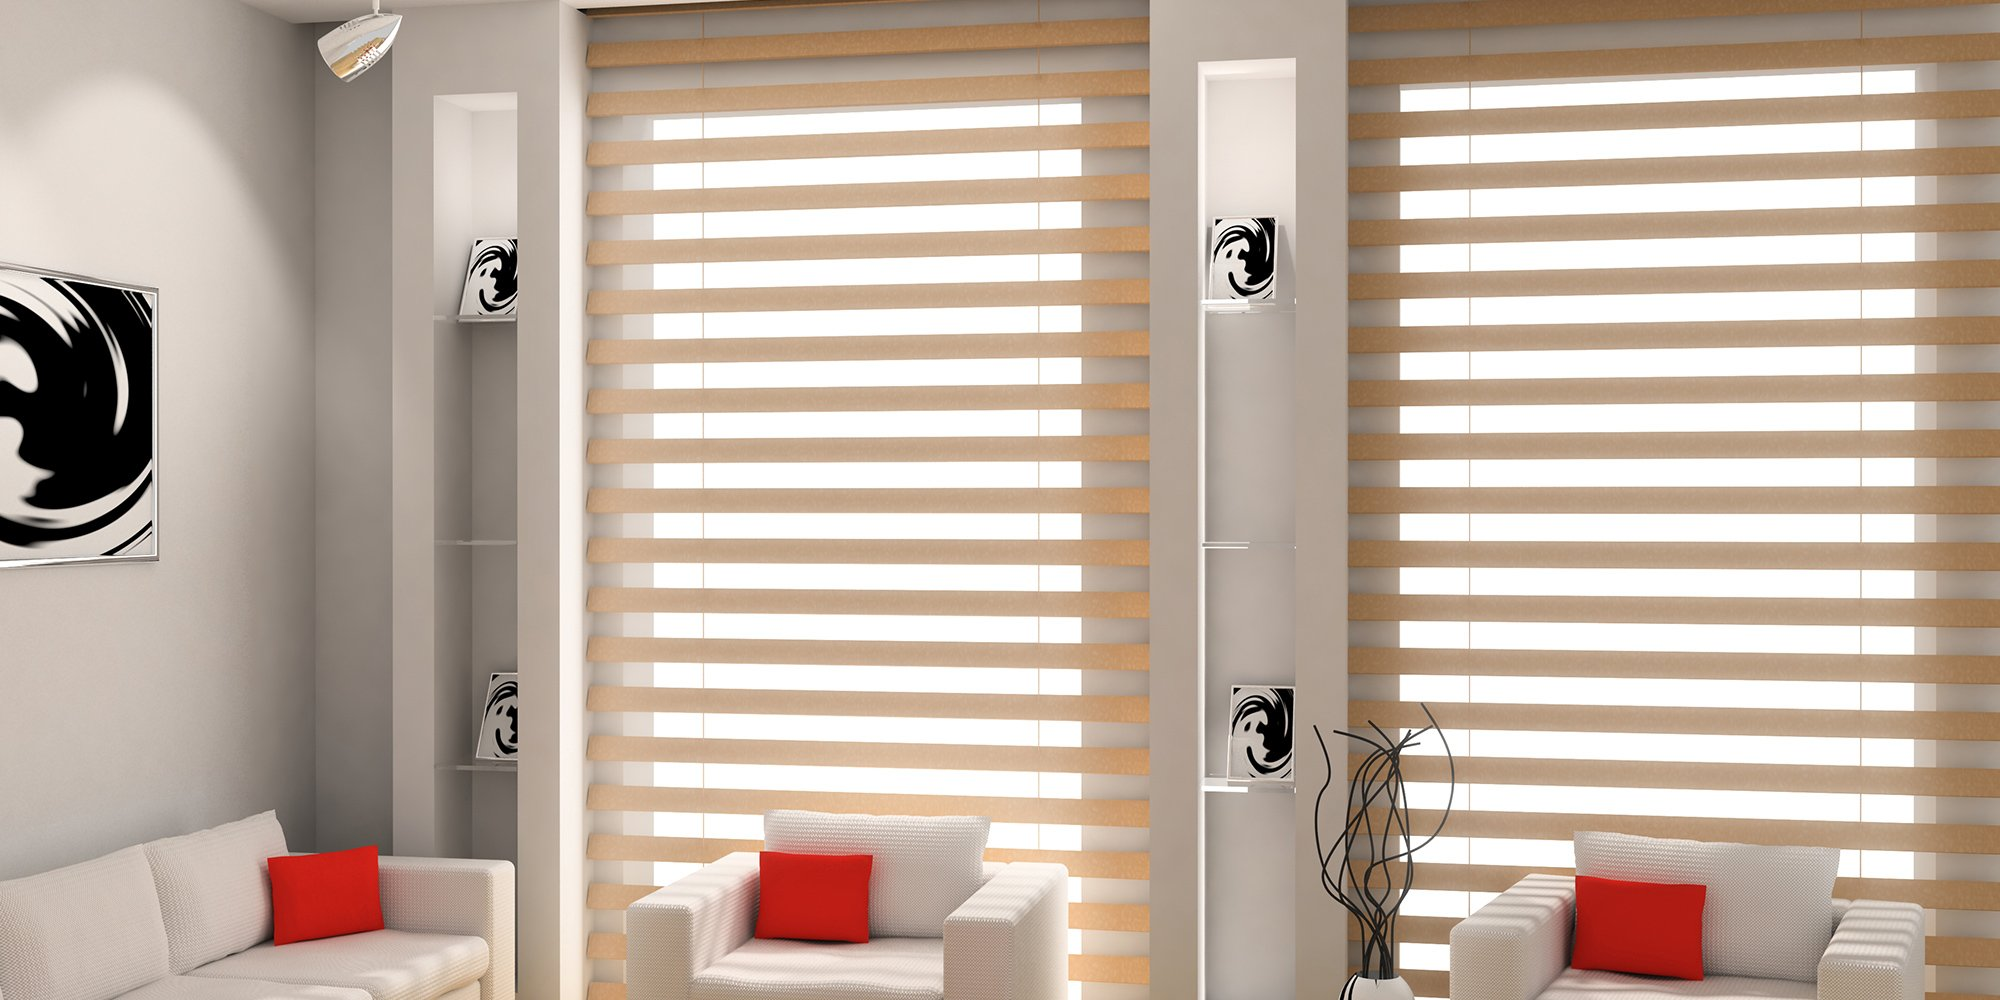 High quality blinds installed by Direct Factory Blinds Ltd